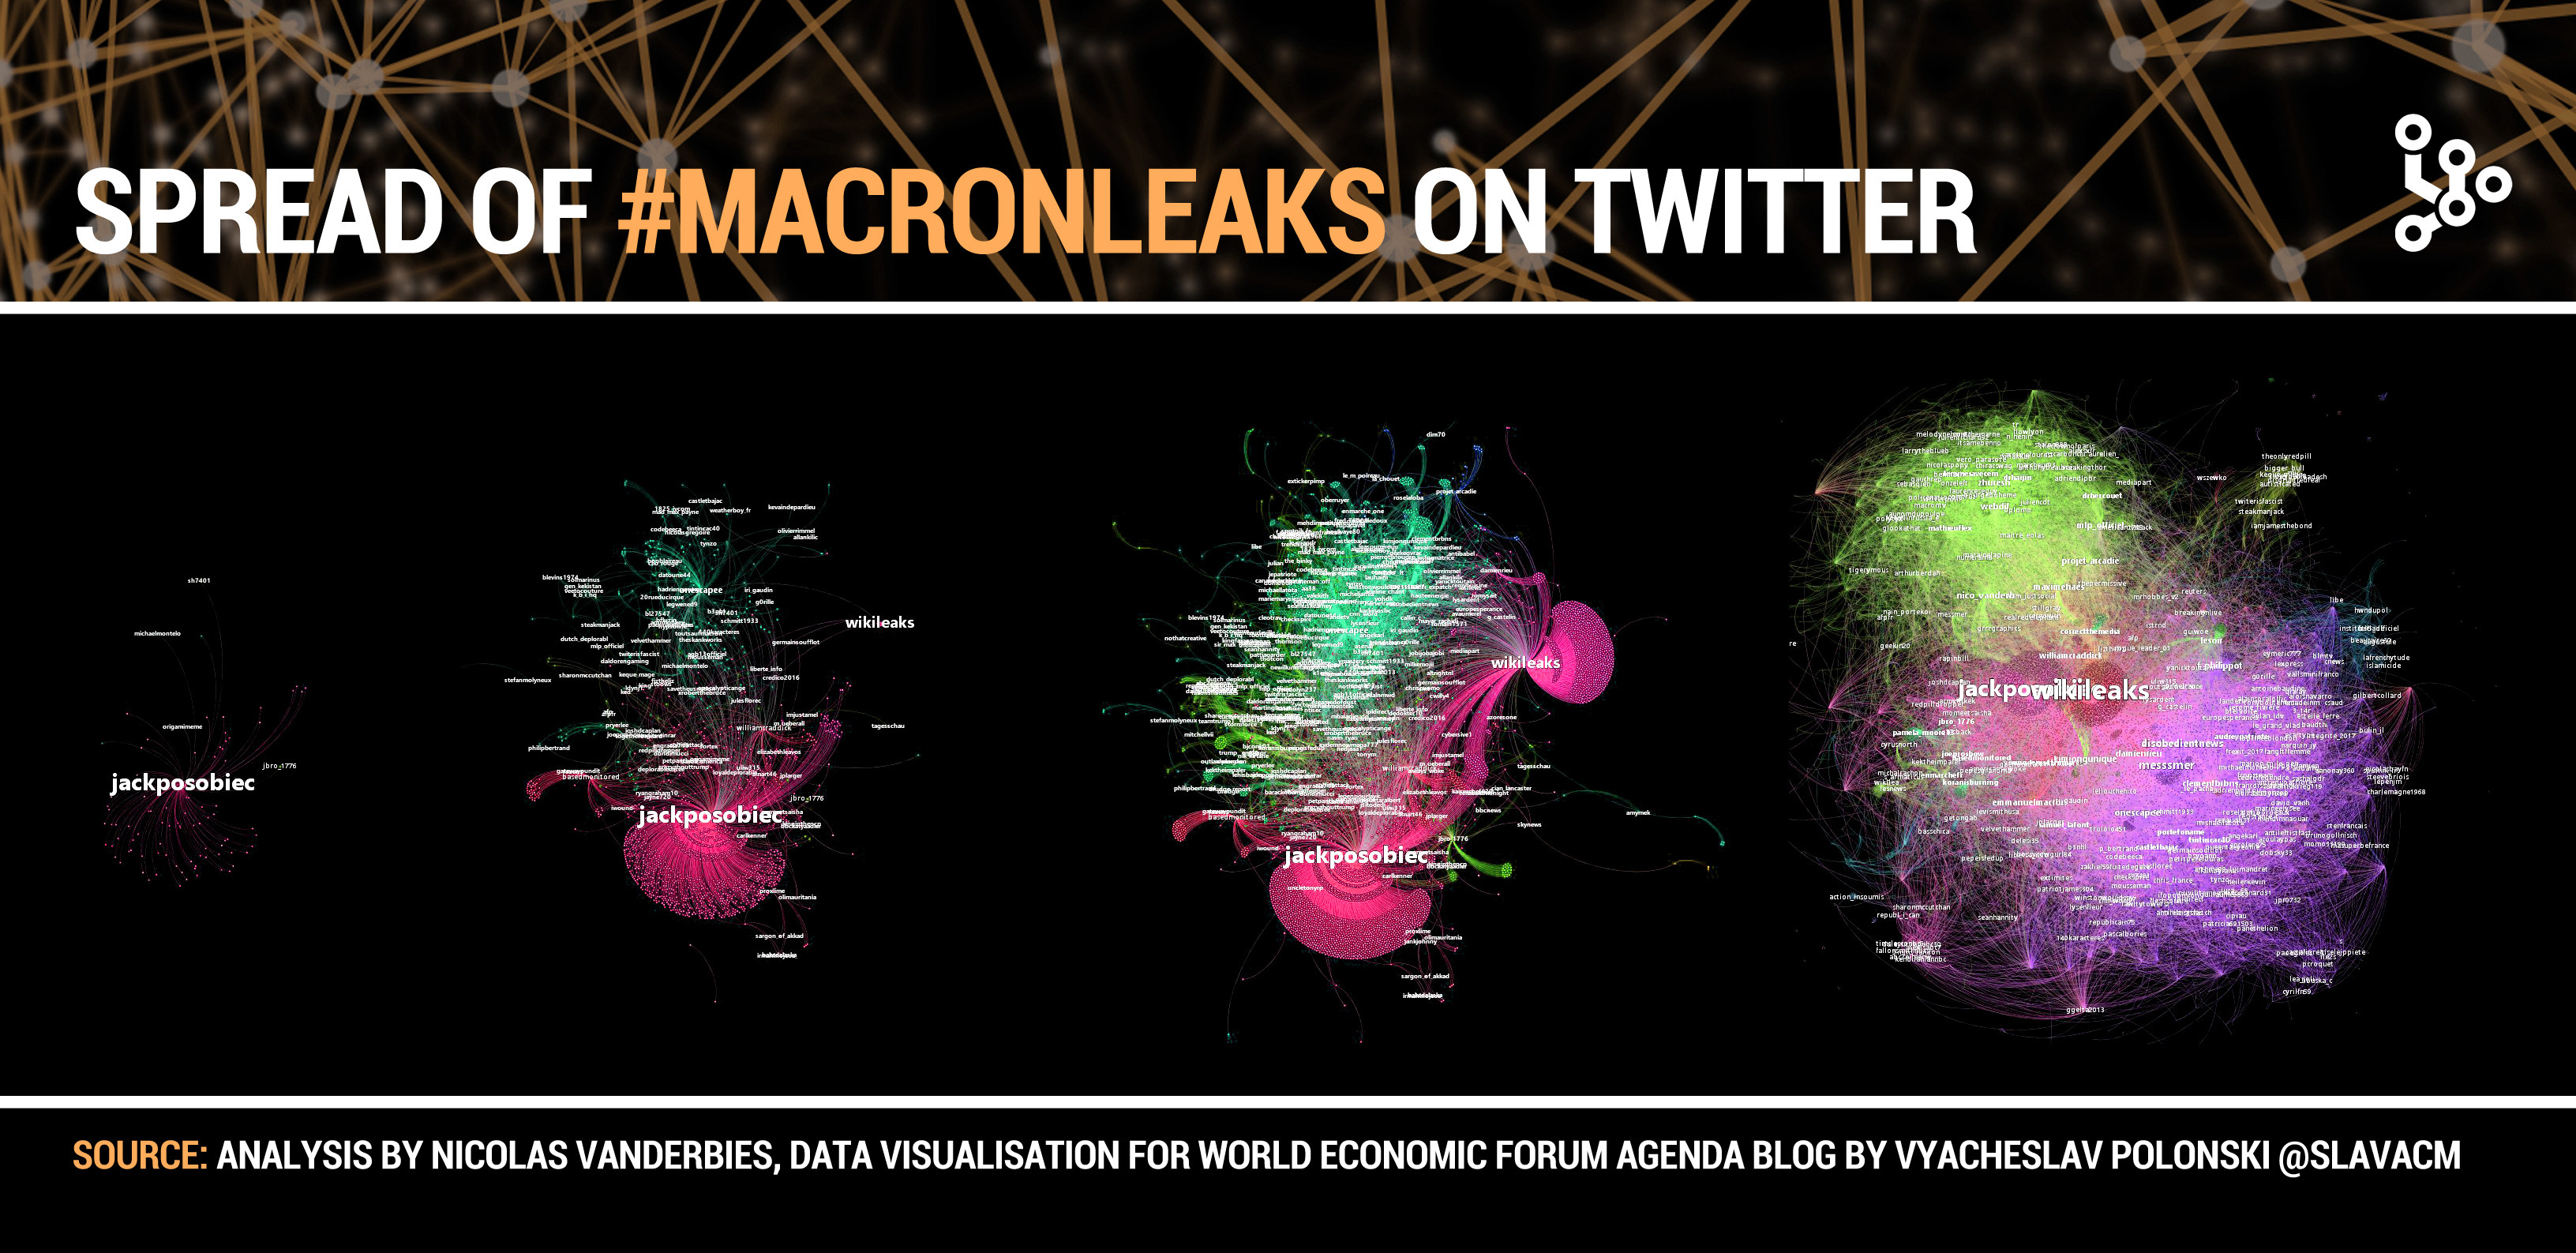 #MacronLeaks changed political campaigning. Why Macron succeeded and Clinton failed